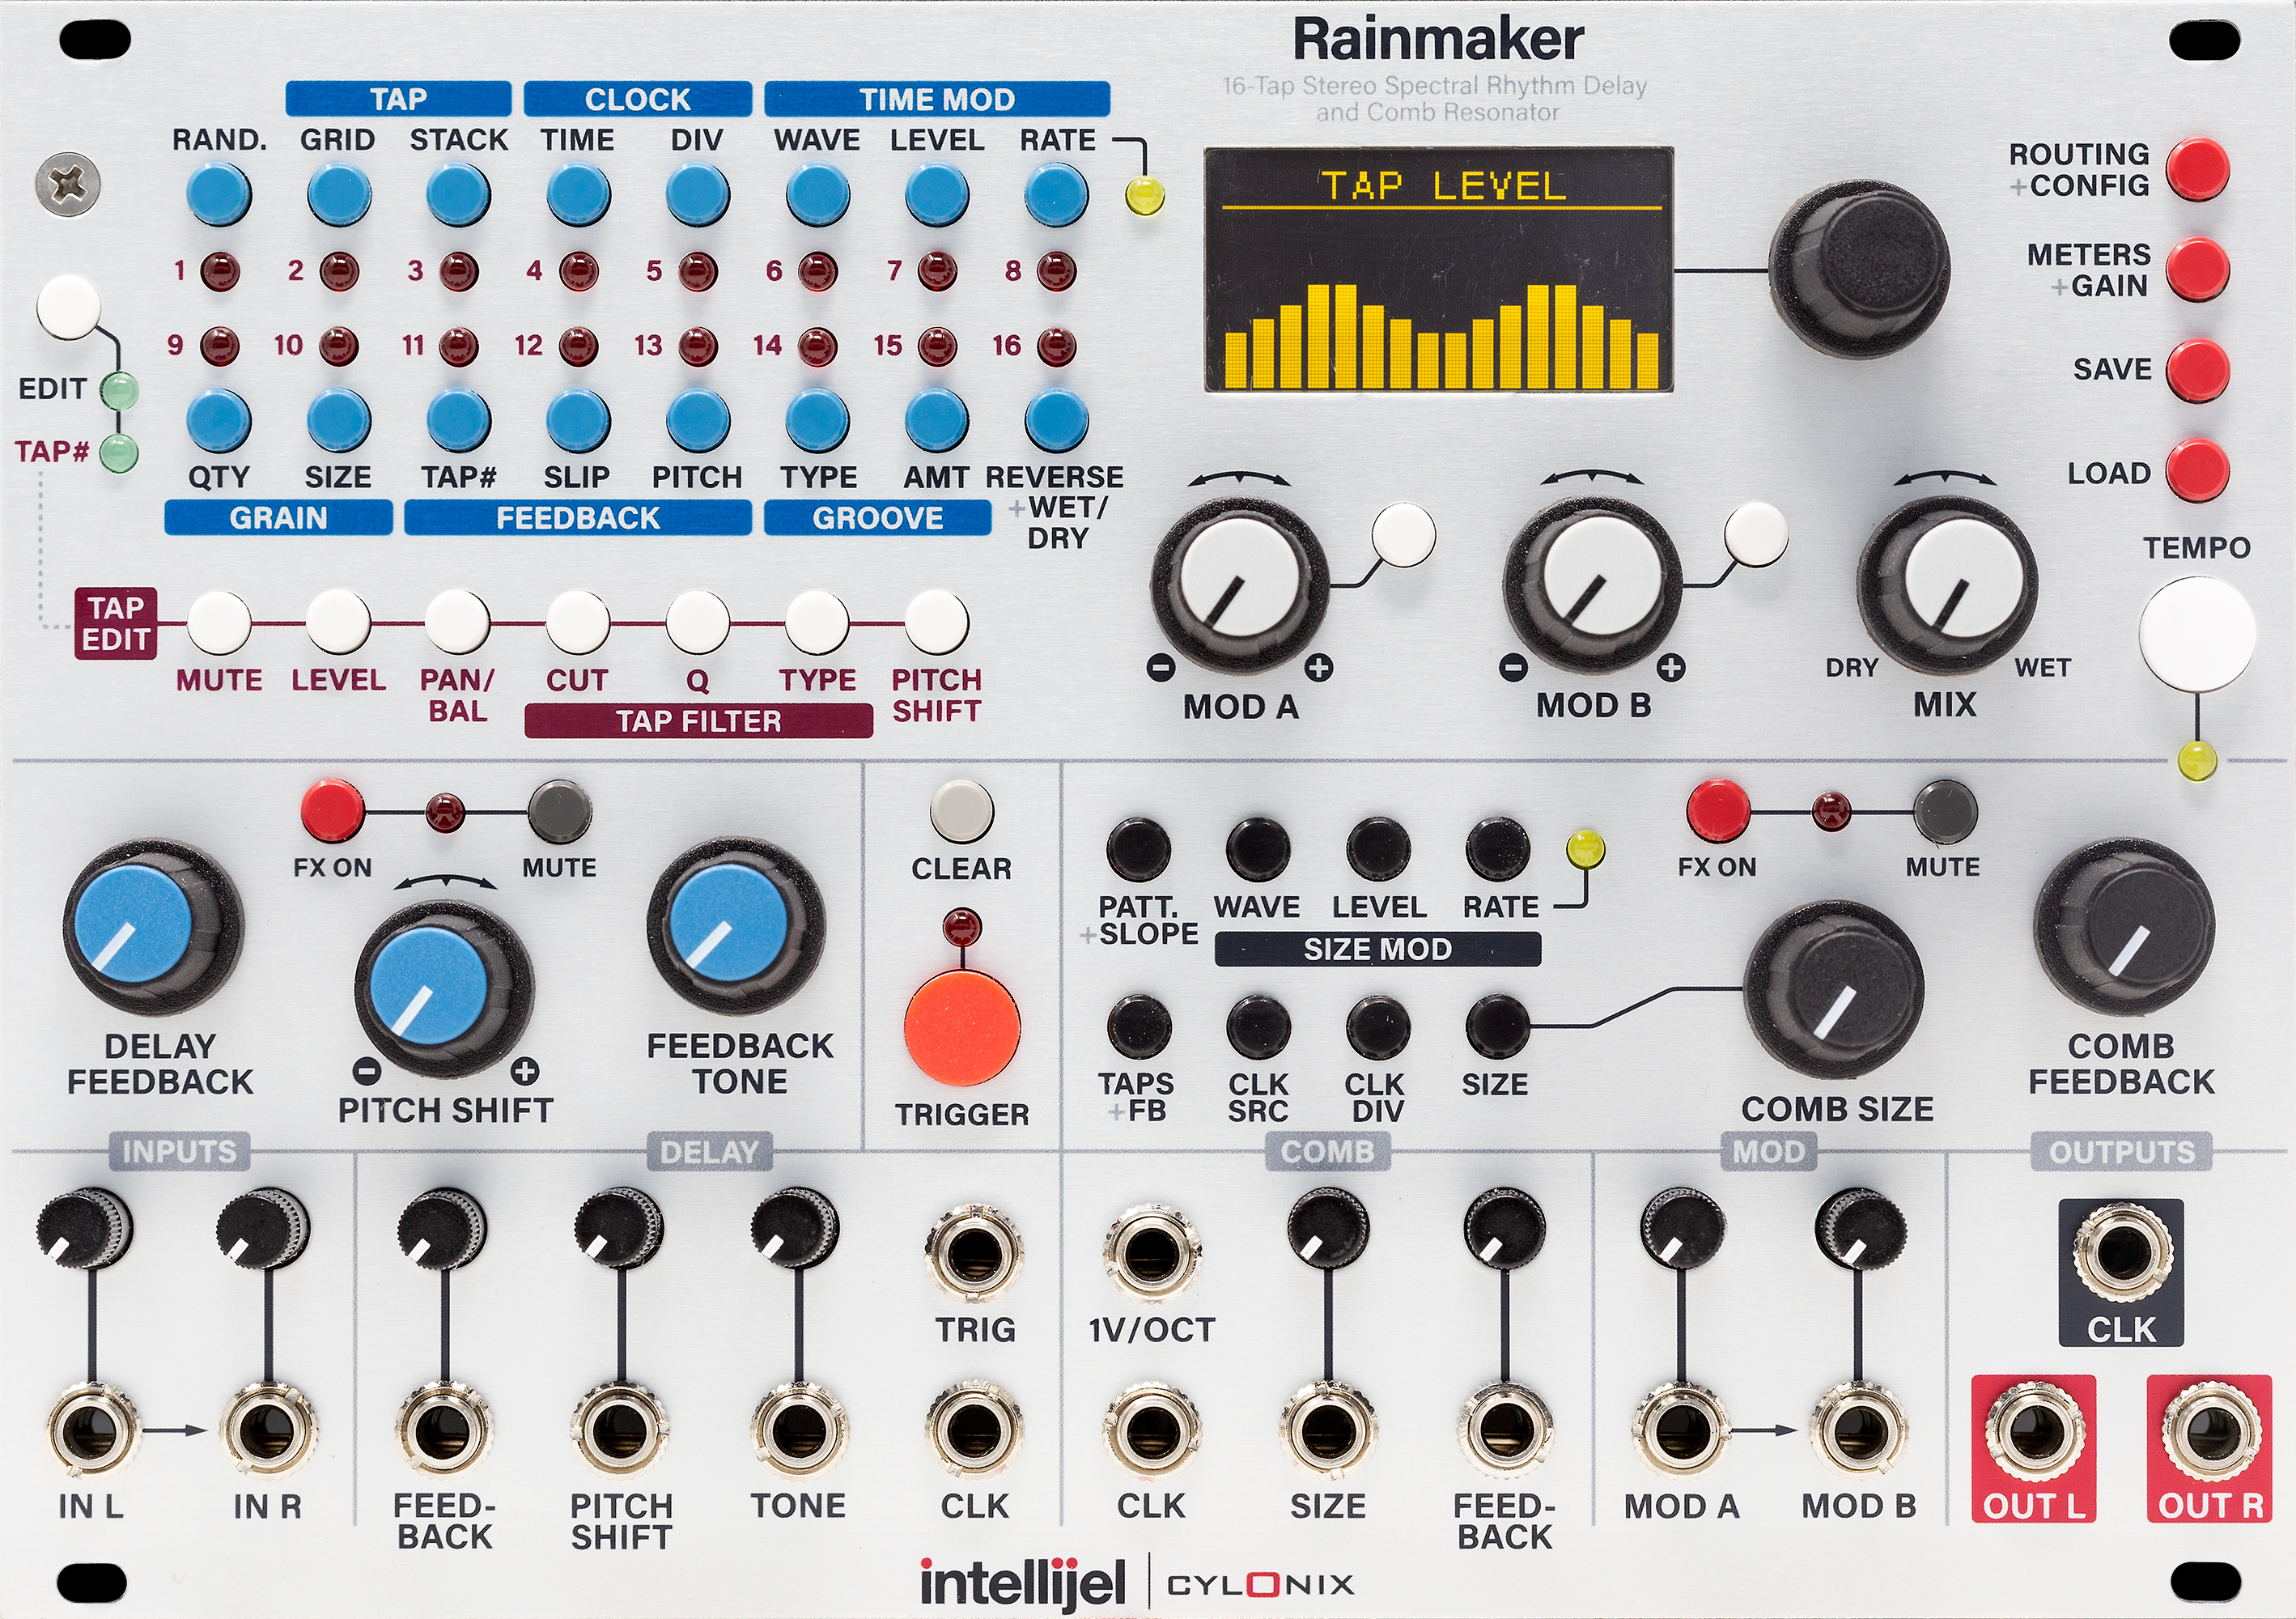 Rainmaker - intellijel